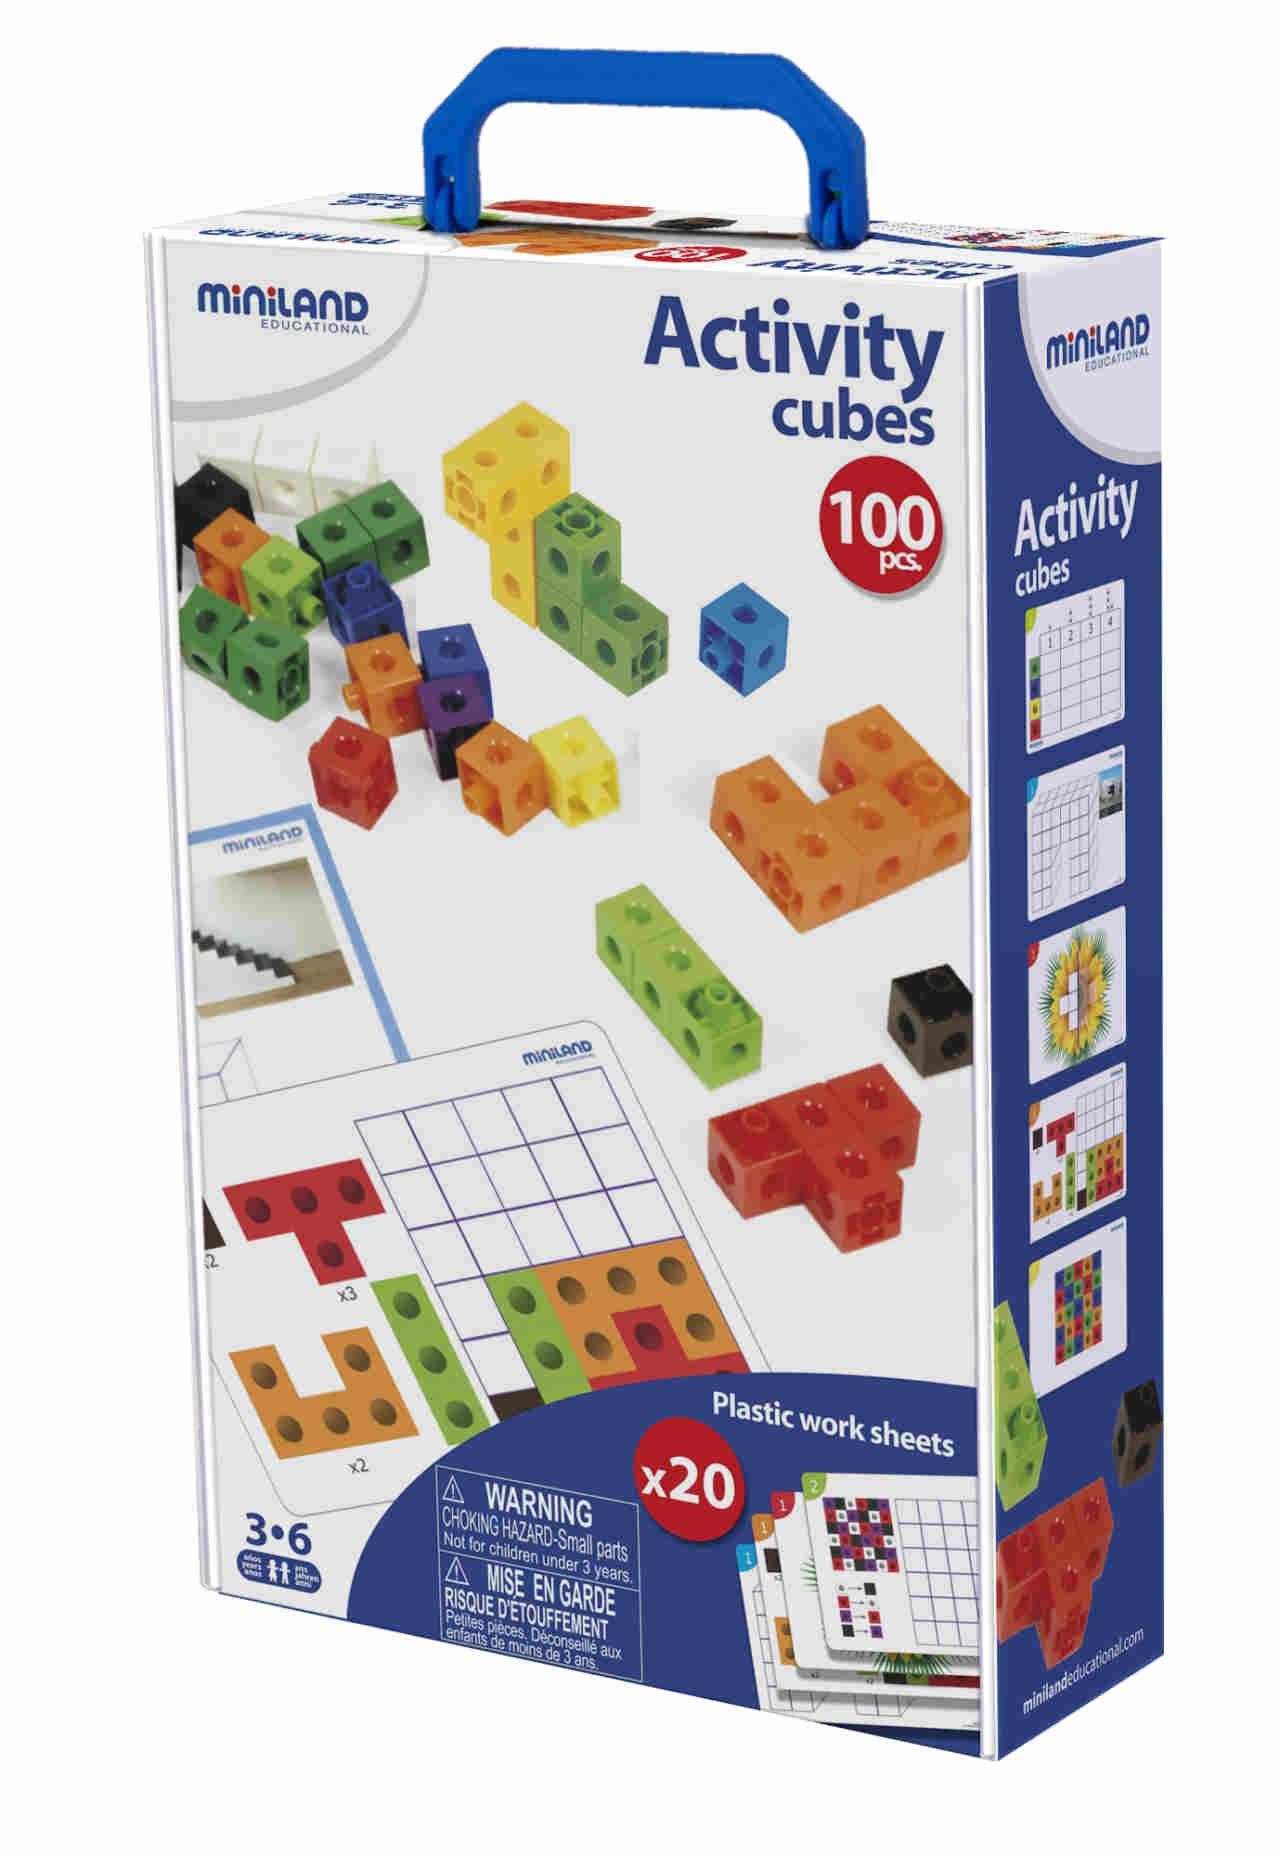 Activity Cubes - 100 pzs